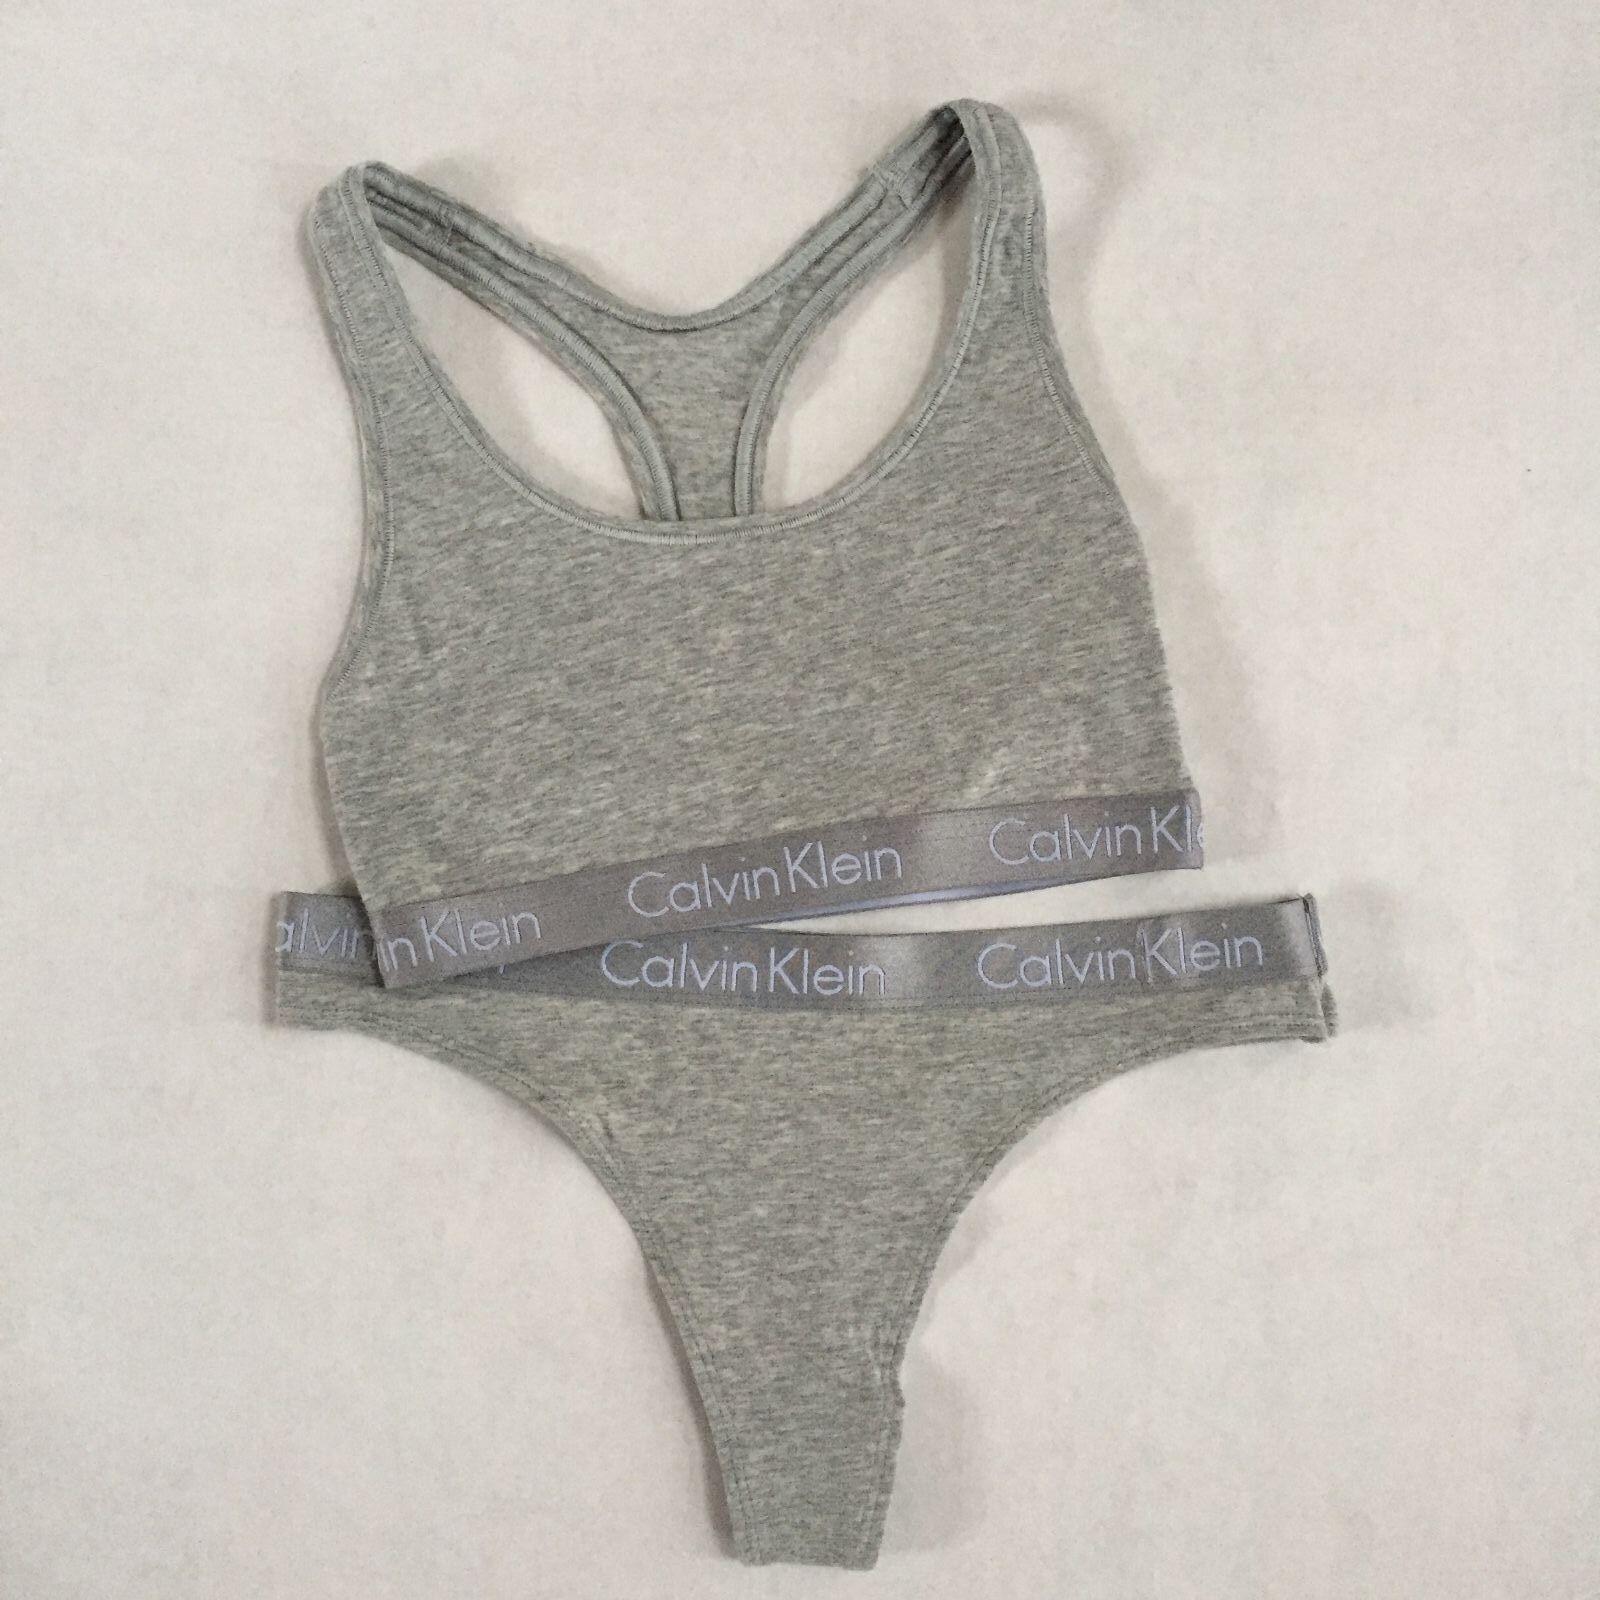 8904550a9e1dd9 Calvin Klein Radiant 2 pc Underwear Grey Sports Bra Bralette   Thong Set CK